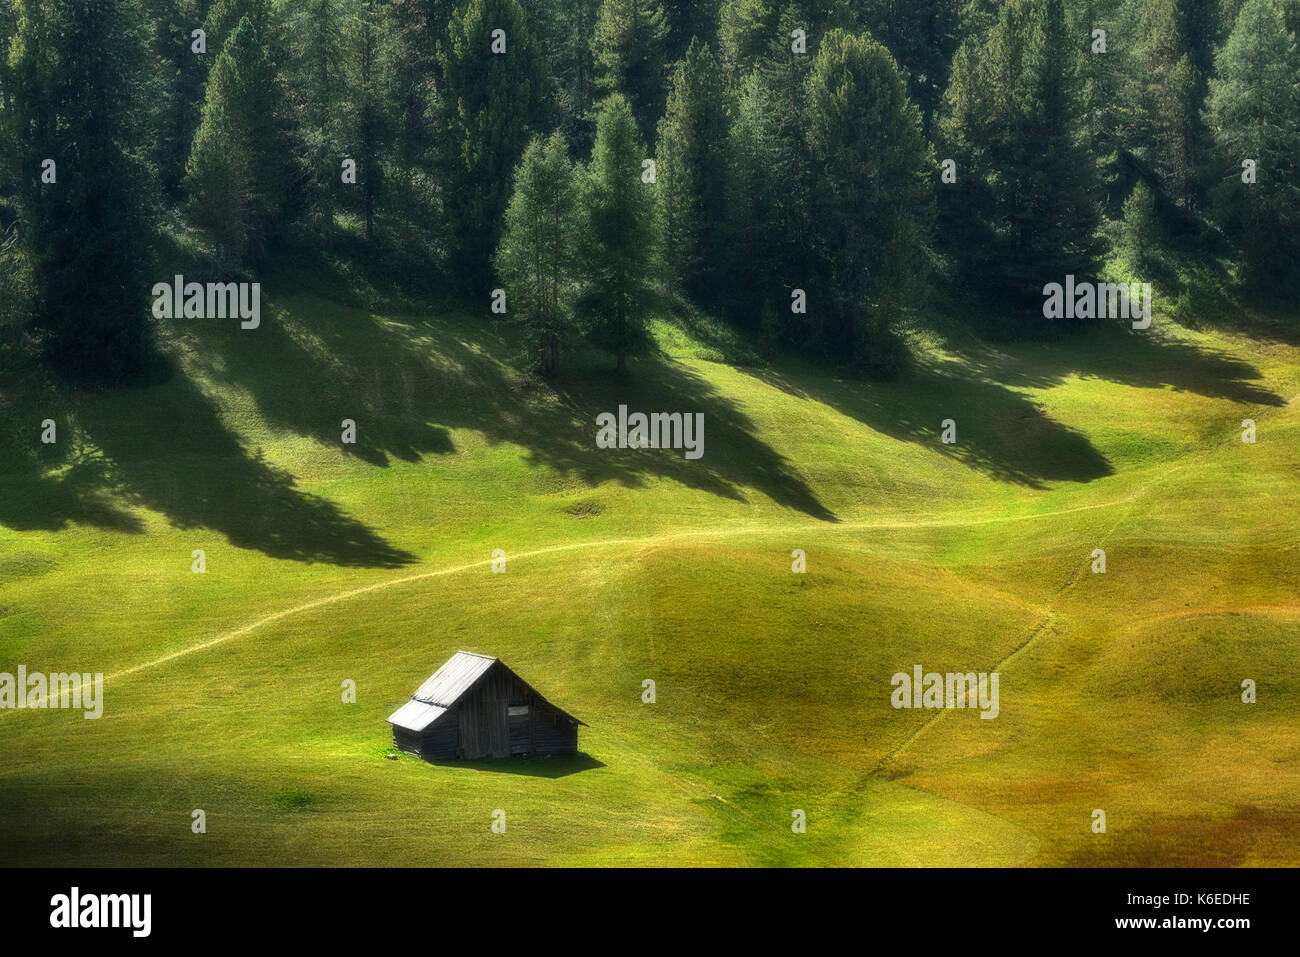 mountain hut on the green meadow with pine forest in the background and shadow - Stock Image